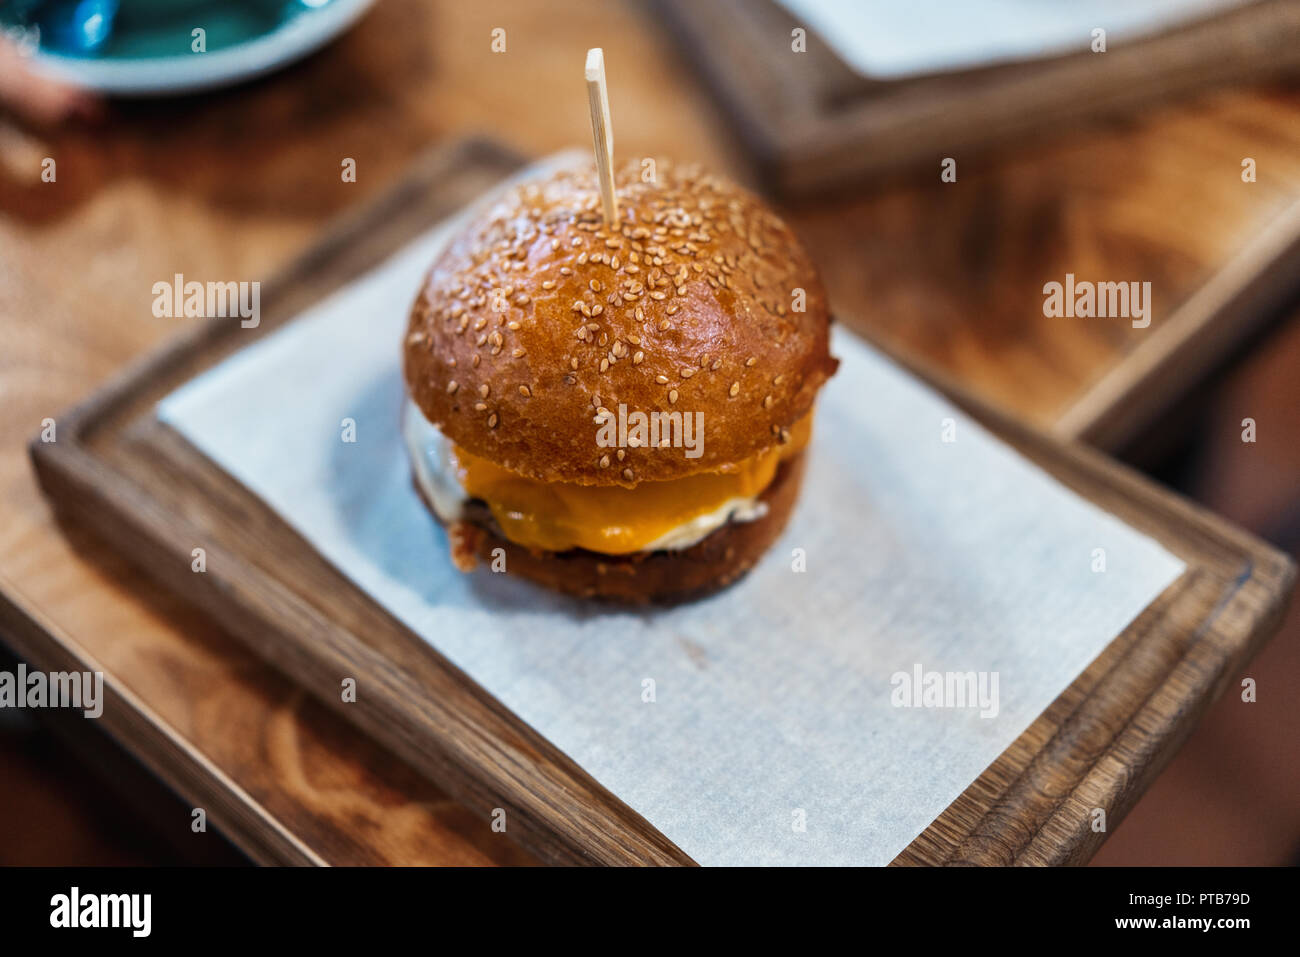 Close up of fresh juicy burger on wooden cutting board in cafe. - Stock Image